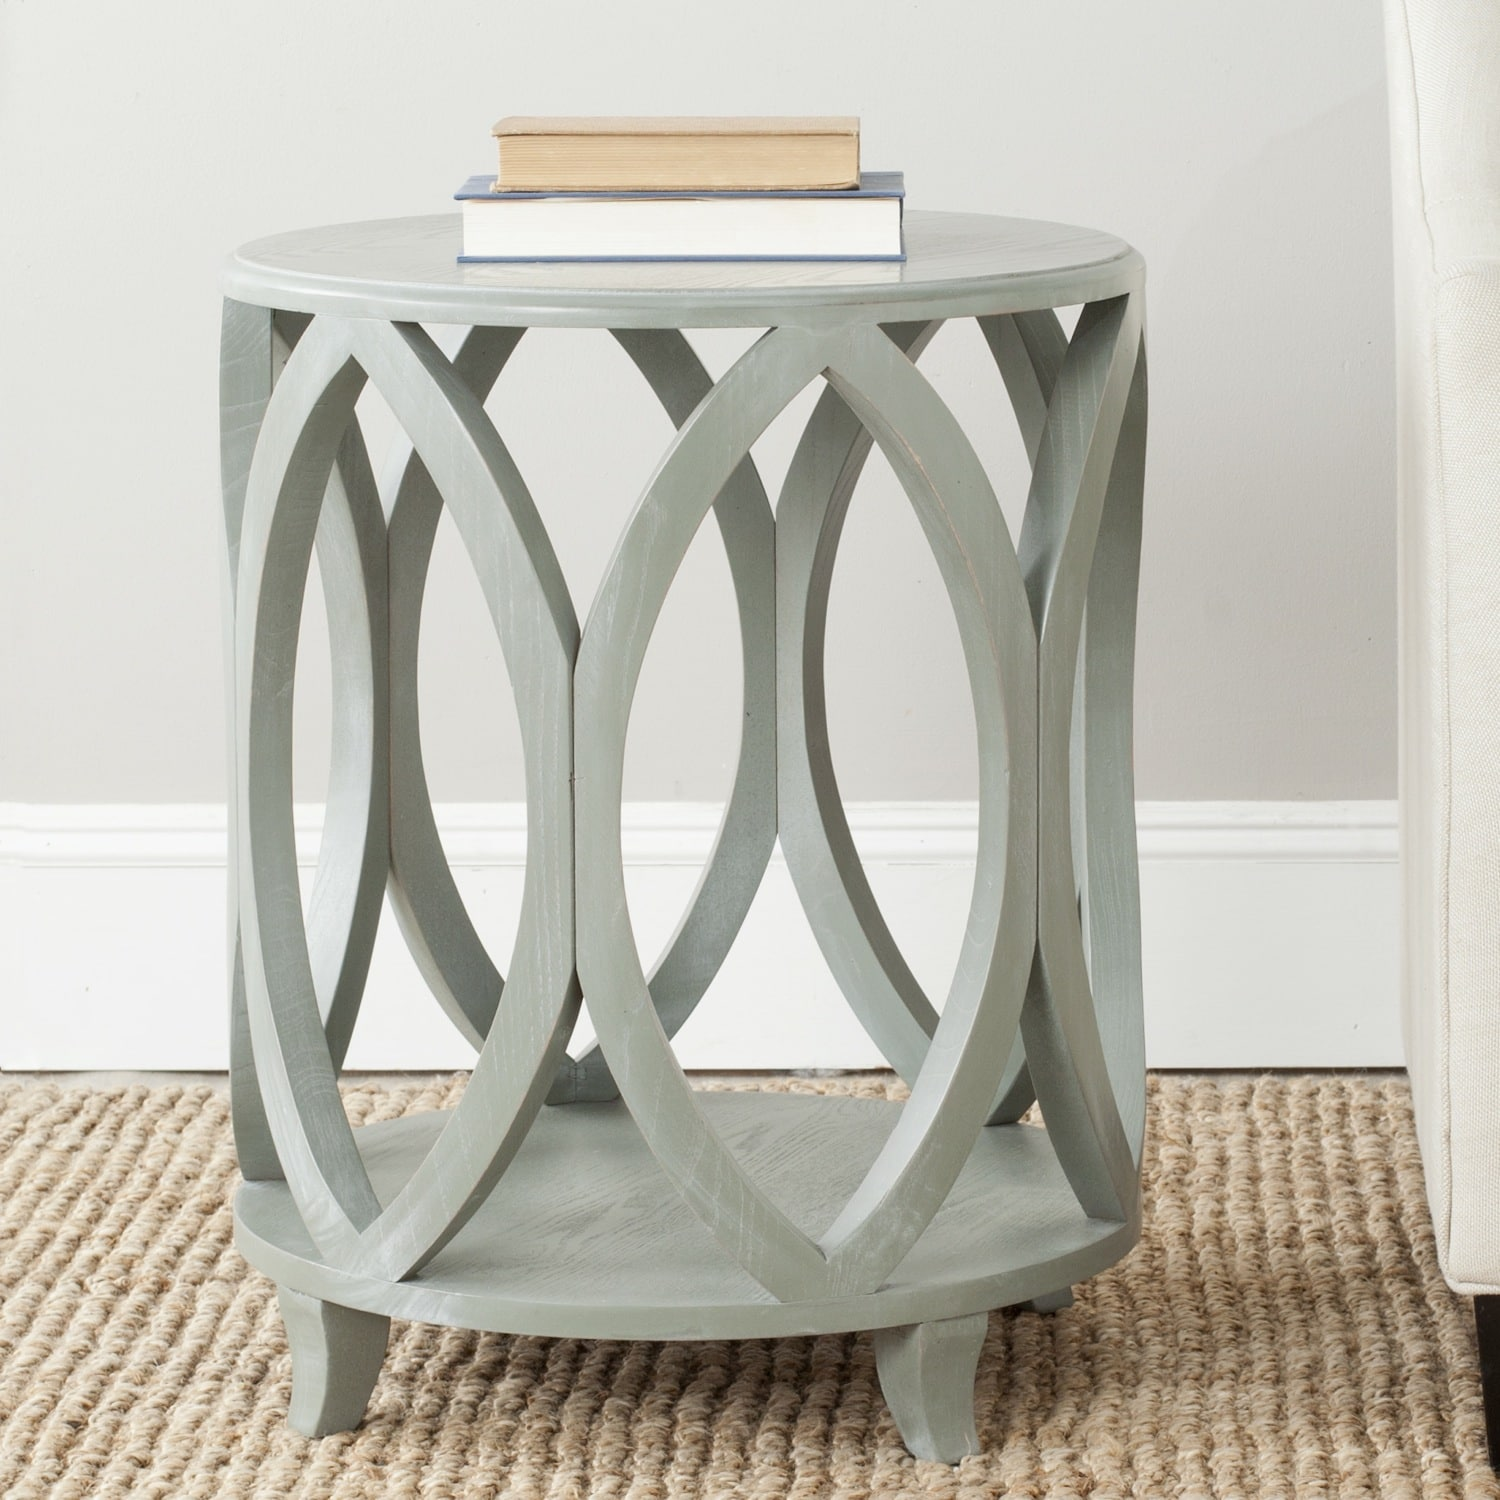 safavieh janika ash grey accent table free shipping off white today round mosaic outdoor dining nate berkus target small bedside light bathroom furniture barn door closet doors